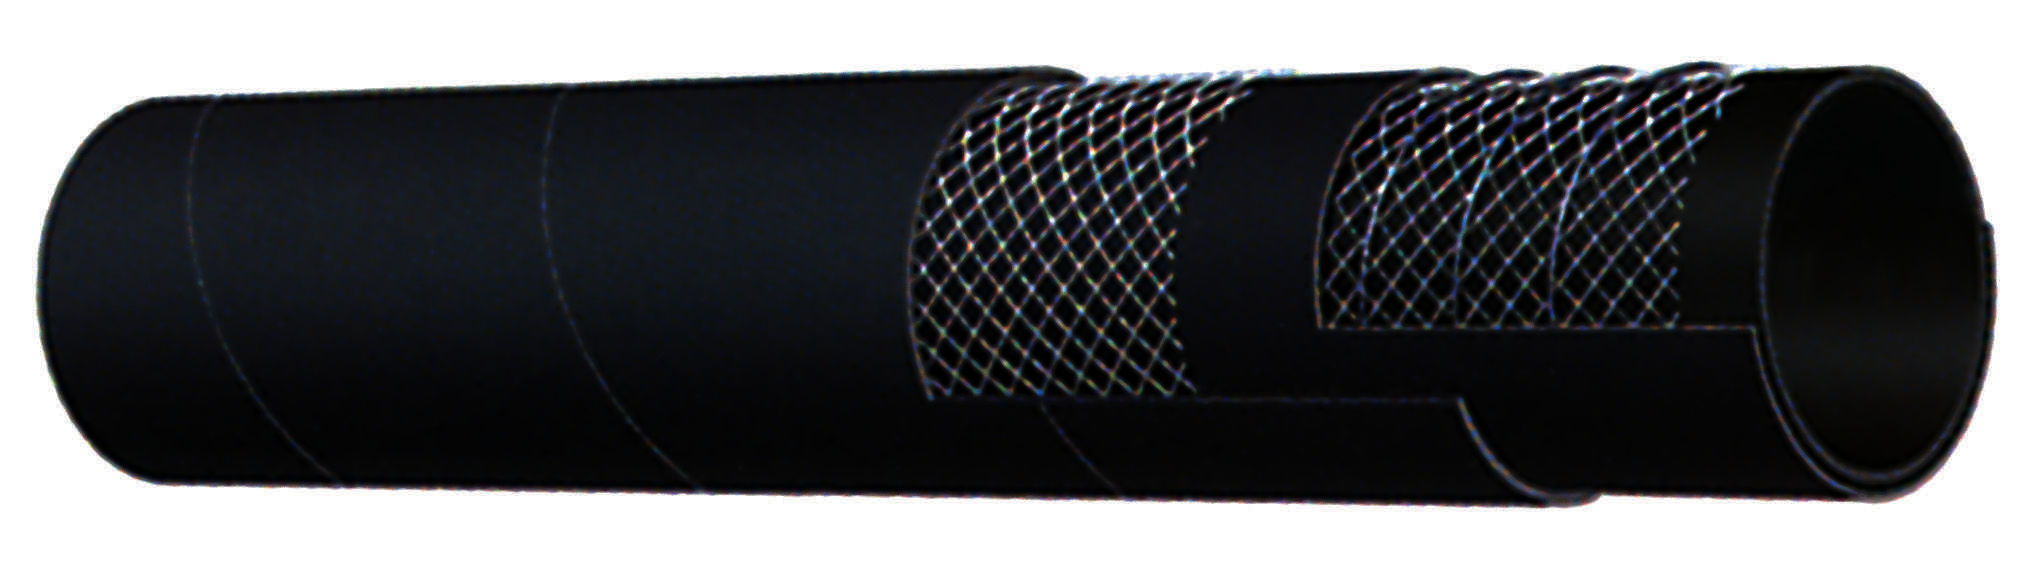 Industrial Rubber & PVC Hose - Kuriyama - Black Petroleum Suction Hose